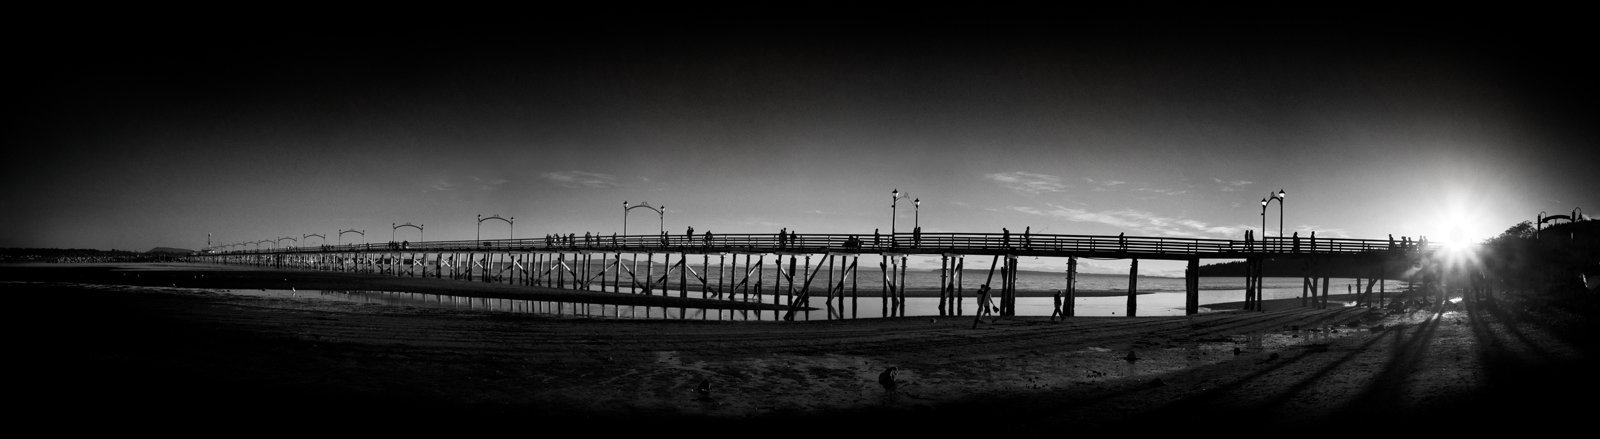 White Rock Pier4 Pano.jpg